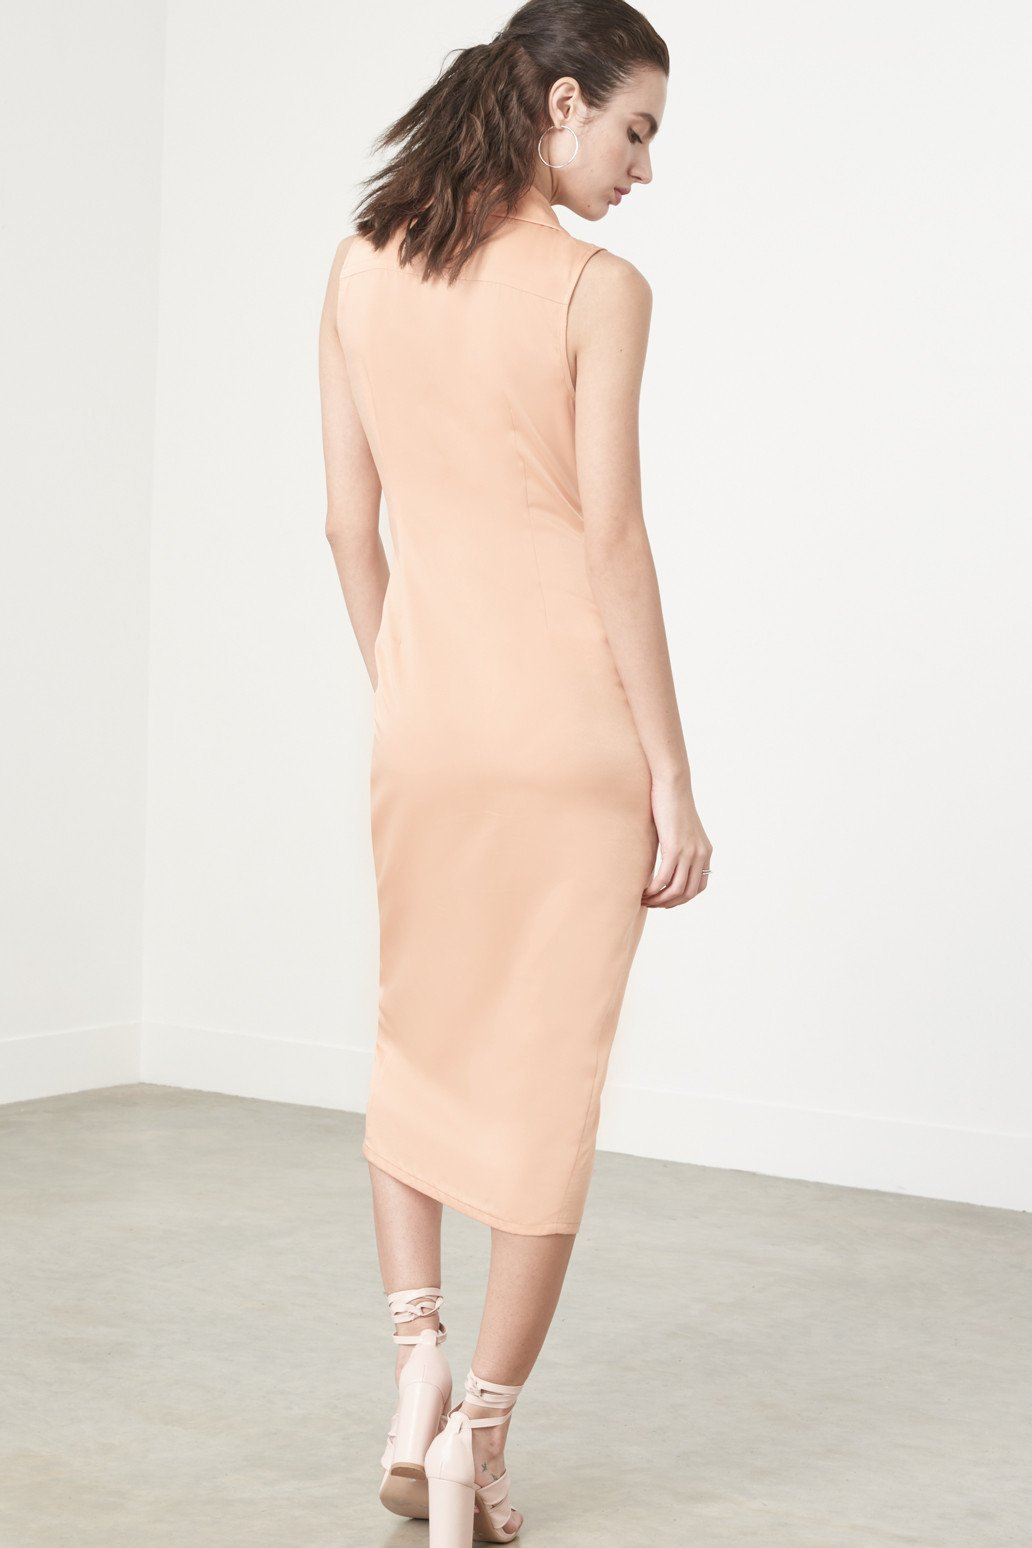 Shop Lavish Alice Dress Lavish Alice Knotted Tux Dress In Apricot Satin Second Thread